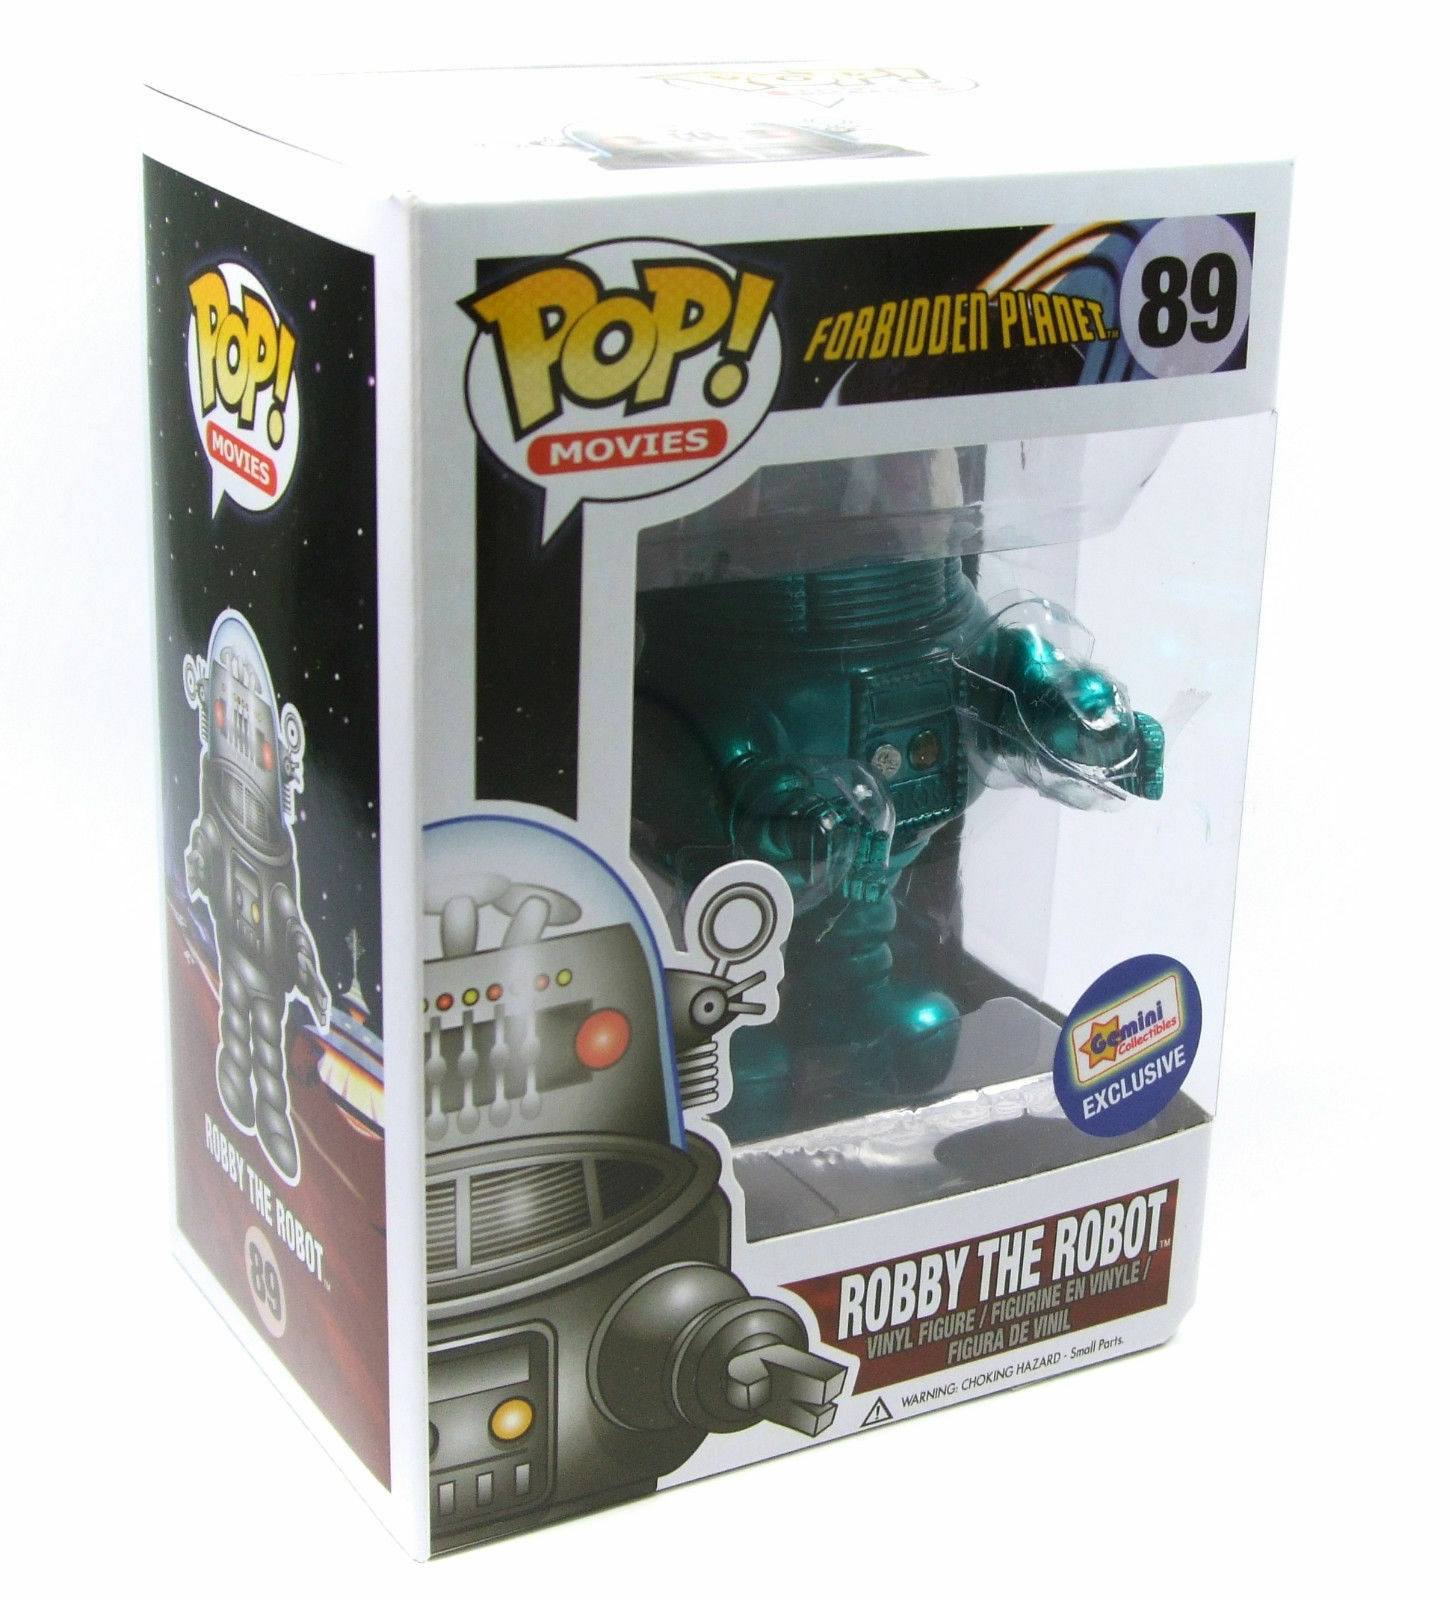 FUNKO POP MOVIES FORBIDDEN PLANET  89 ROBBY THE ROBOTGEMINI RARE VINYL